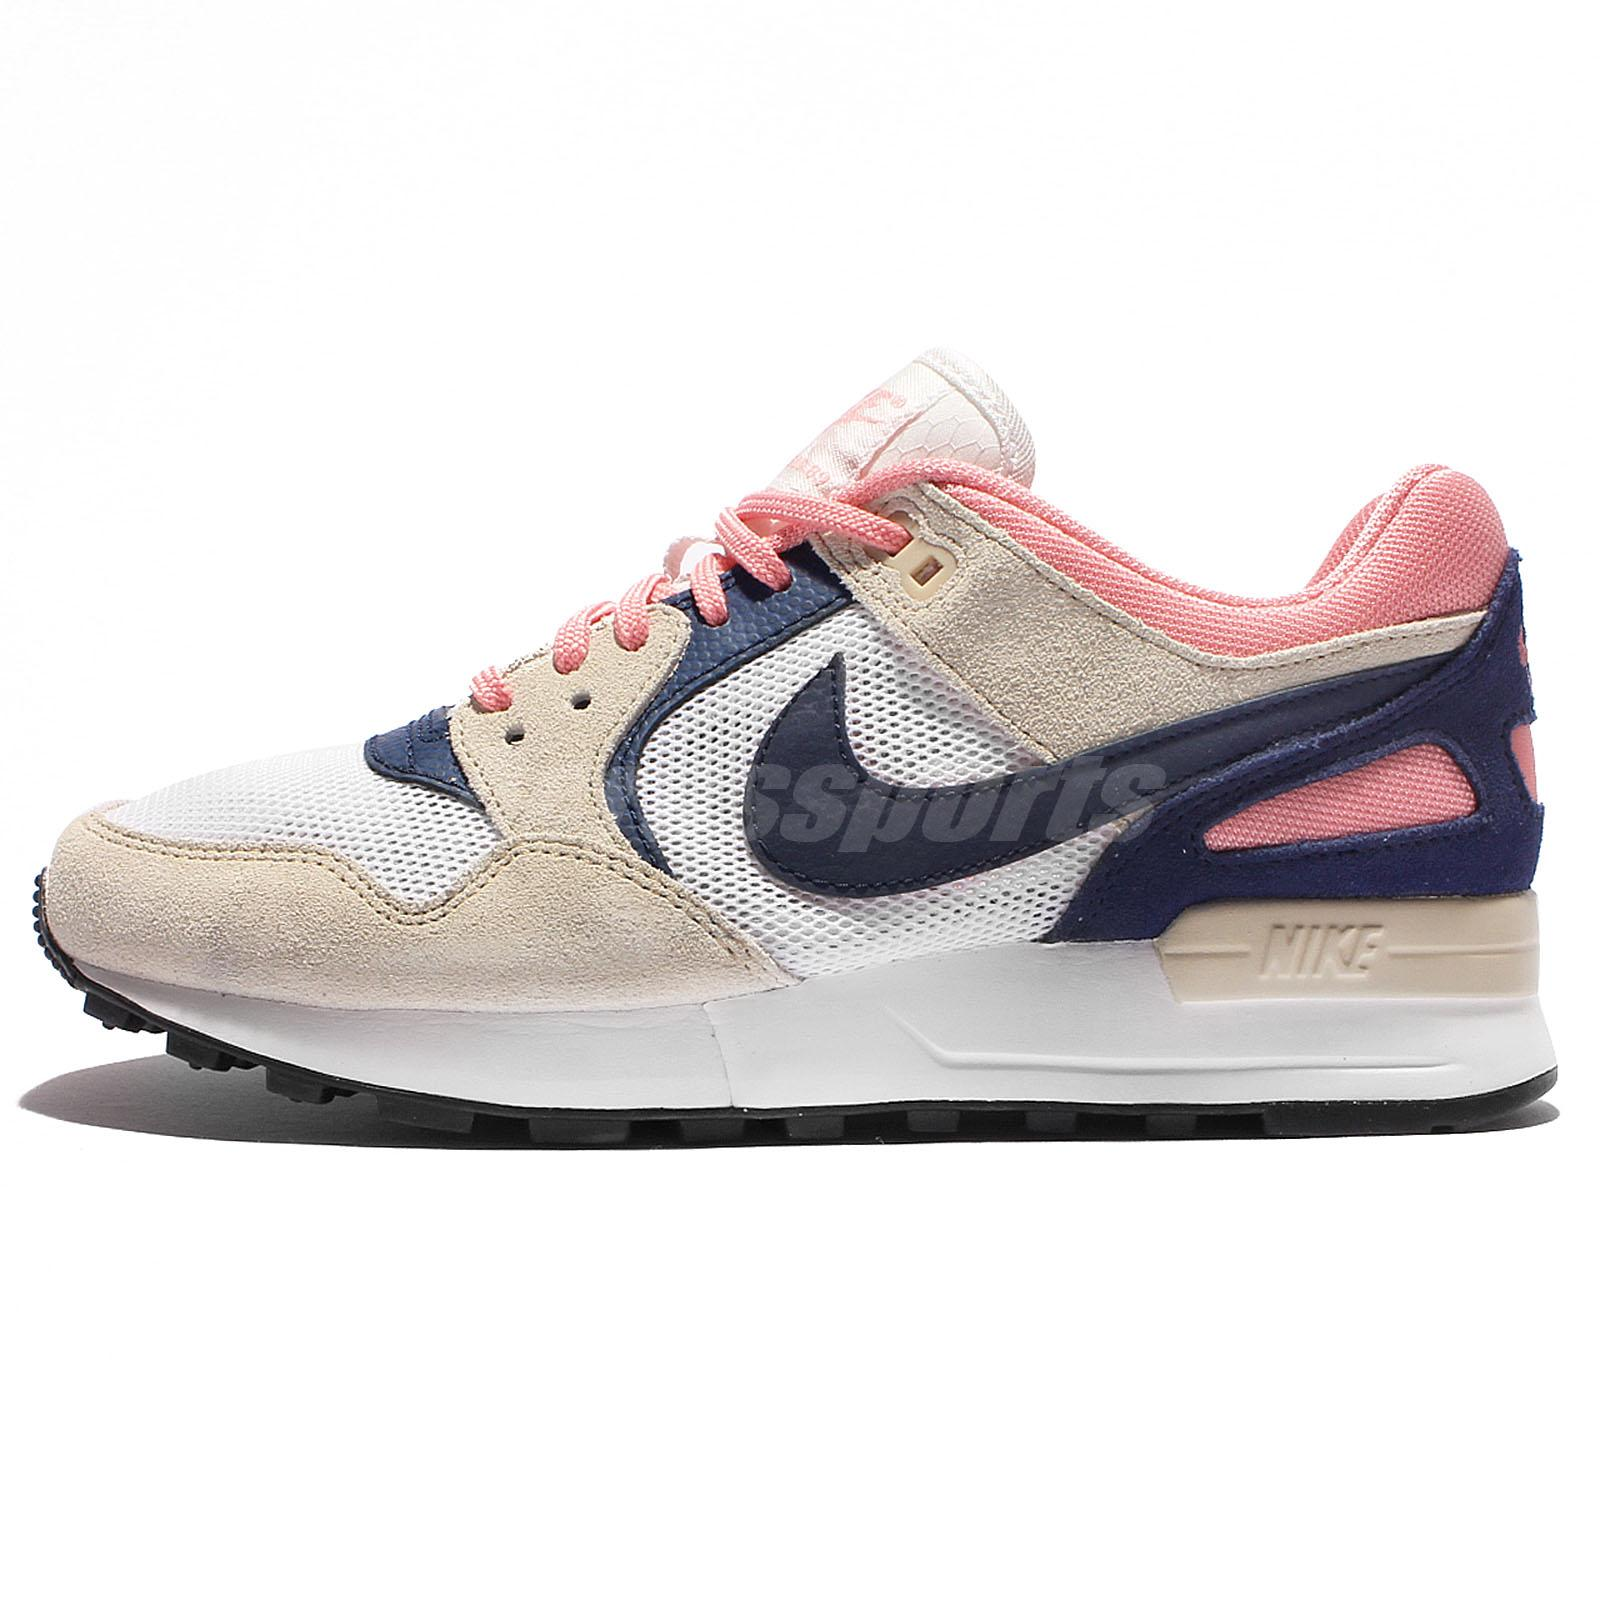 wmns nike air pegasus 89 white blue women running shoes. Black Bedroom Furniture Sets. Home Design Ideas